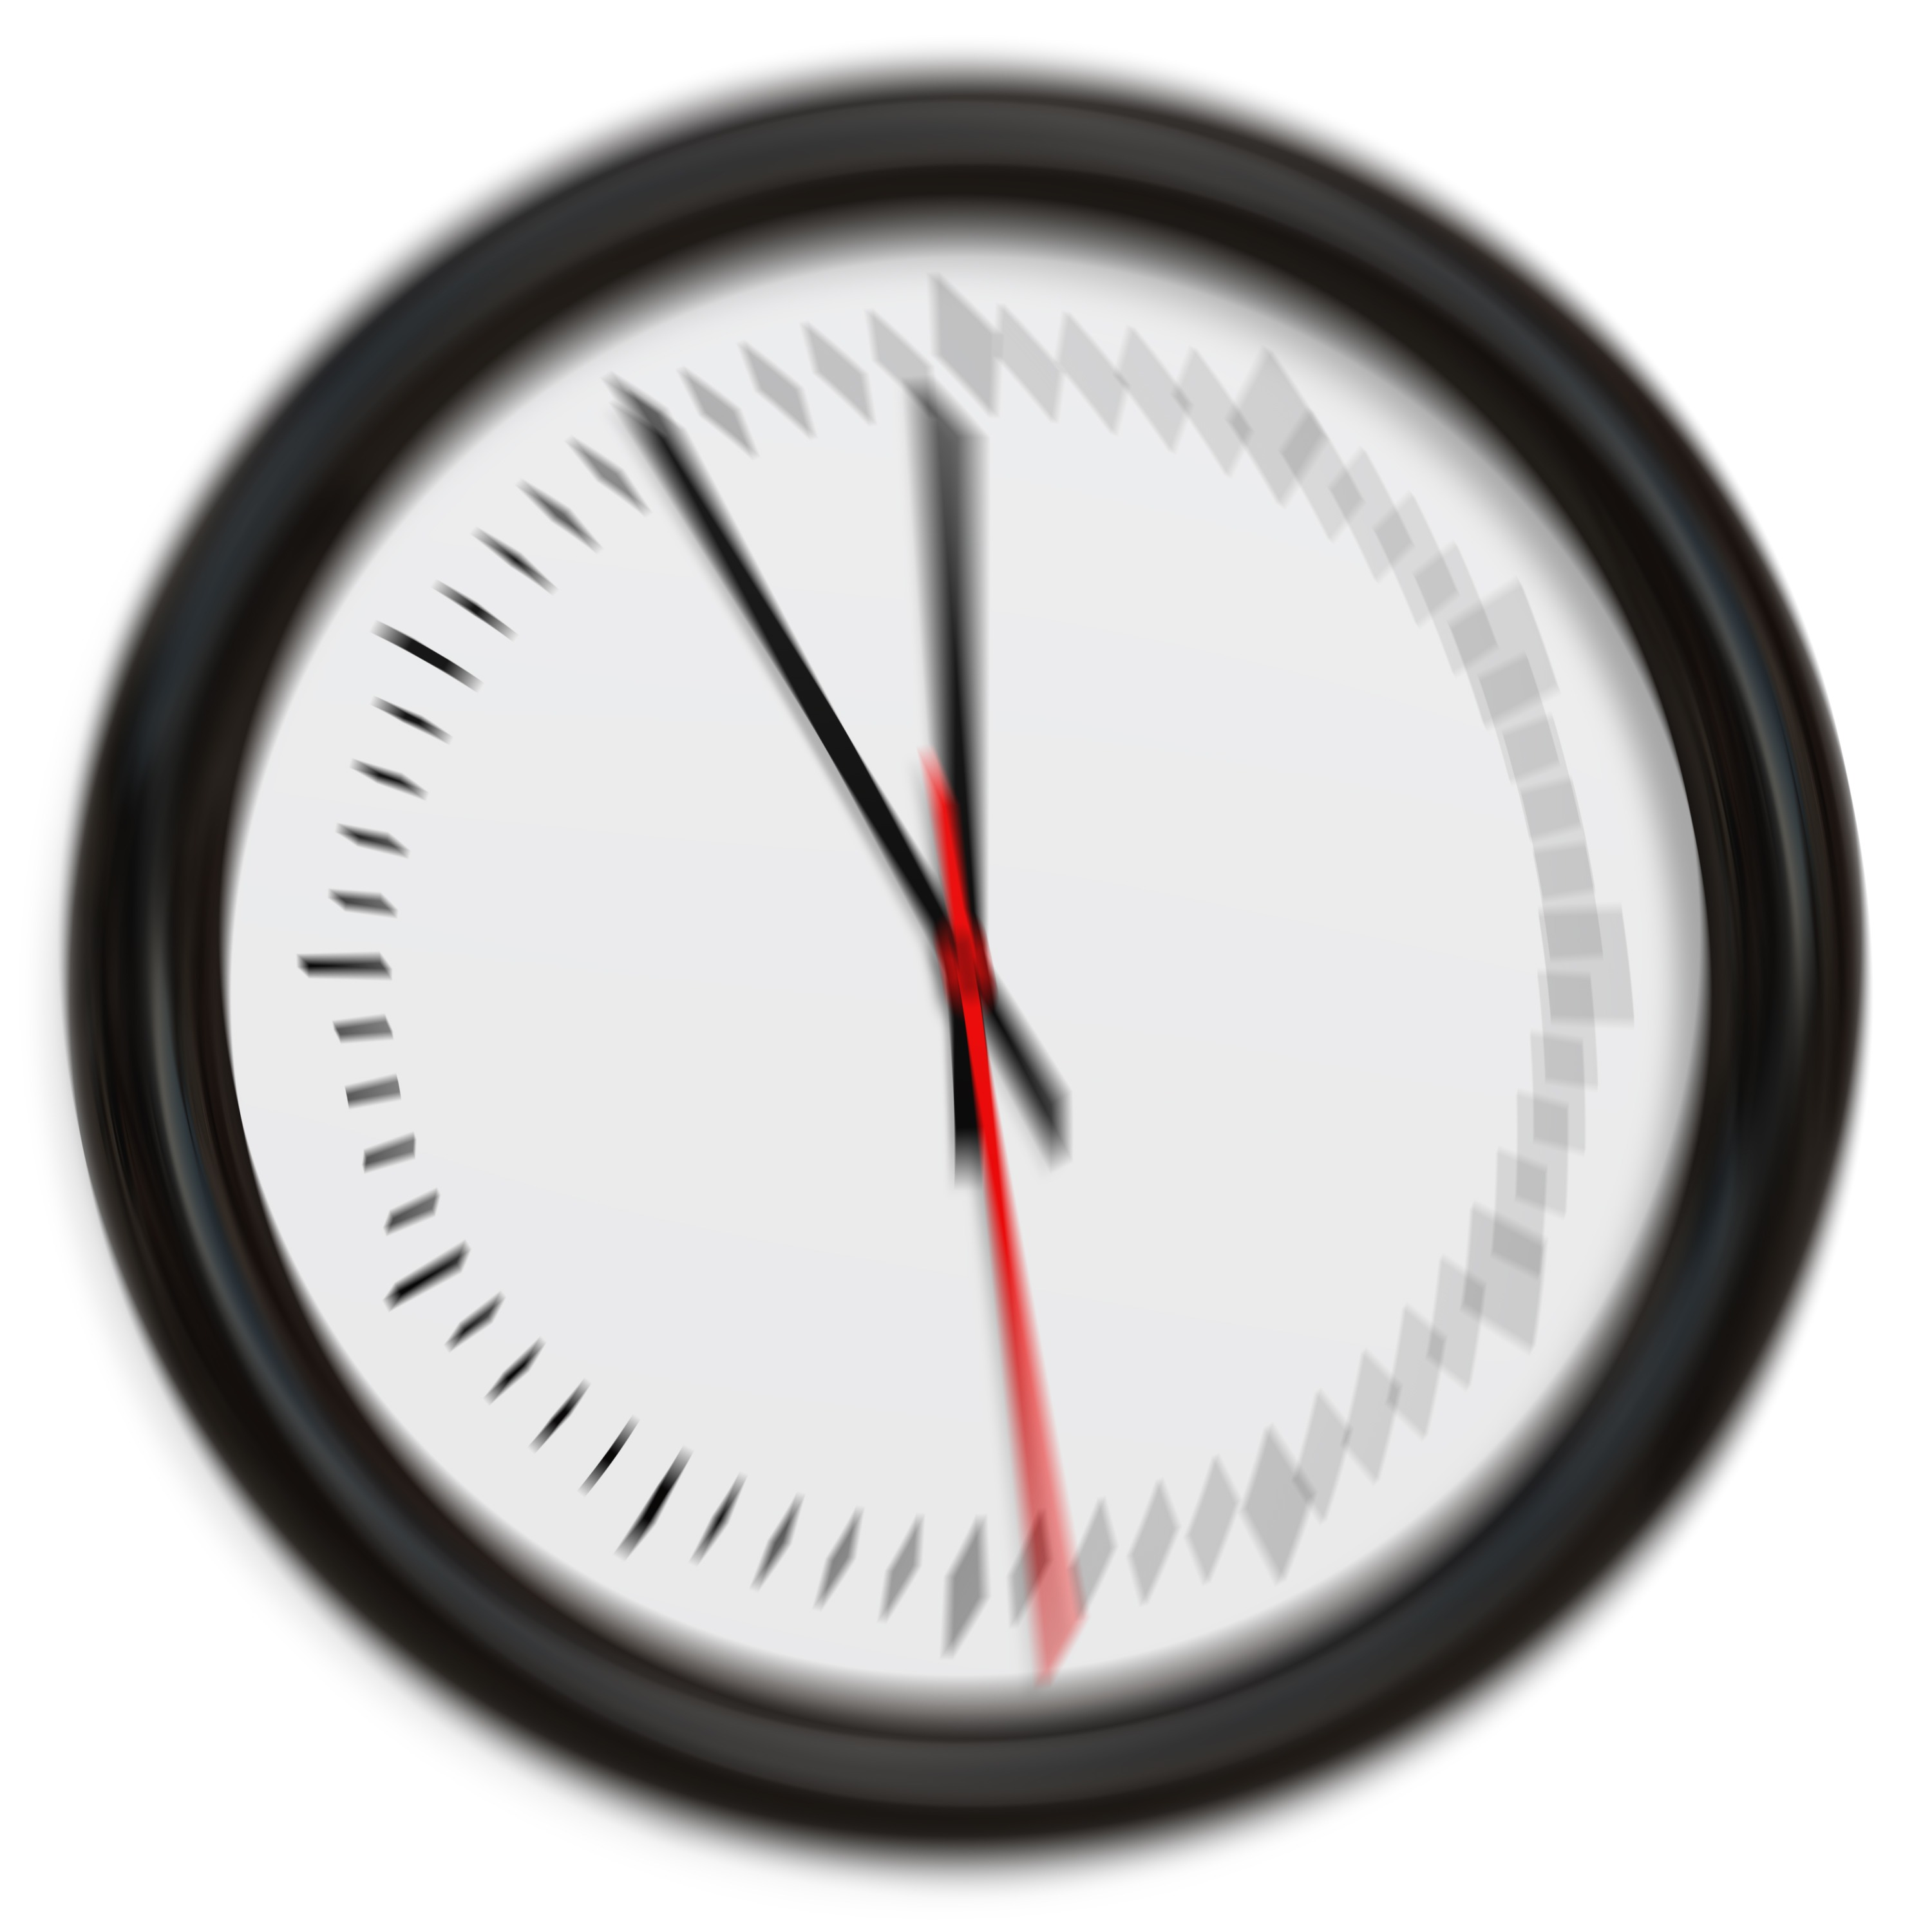 Free Images : clock, time, gauge, circle, proverb, blurry, pointer.